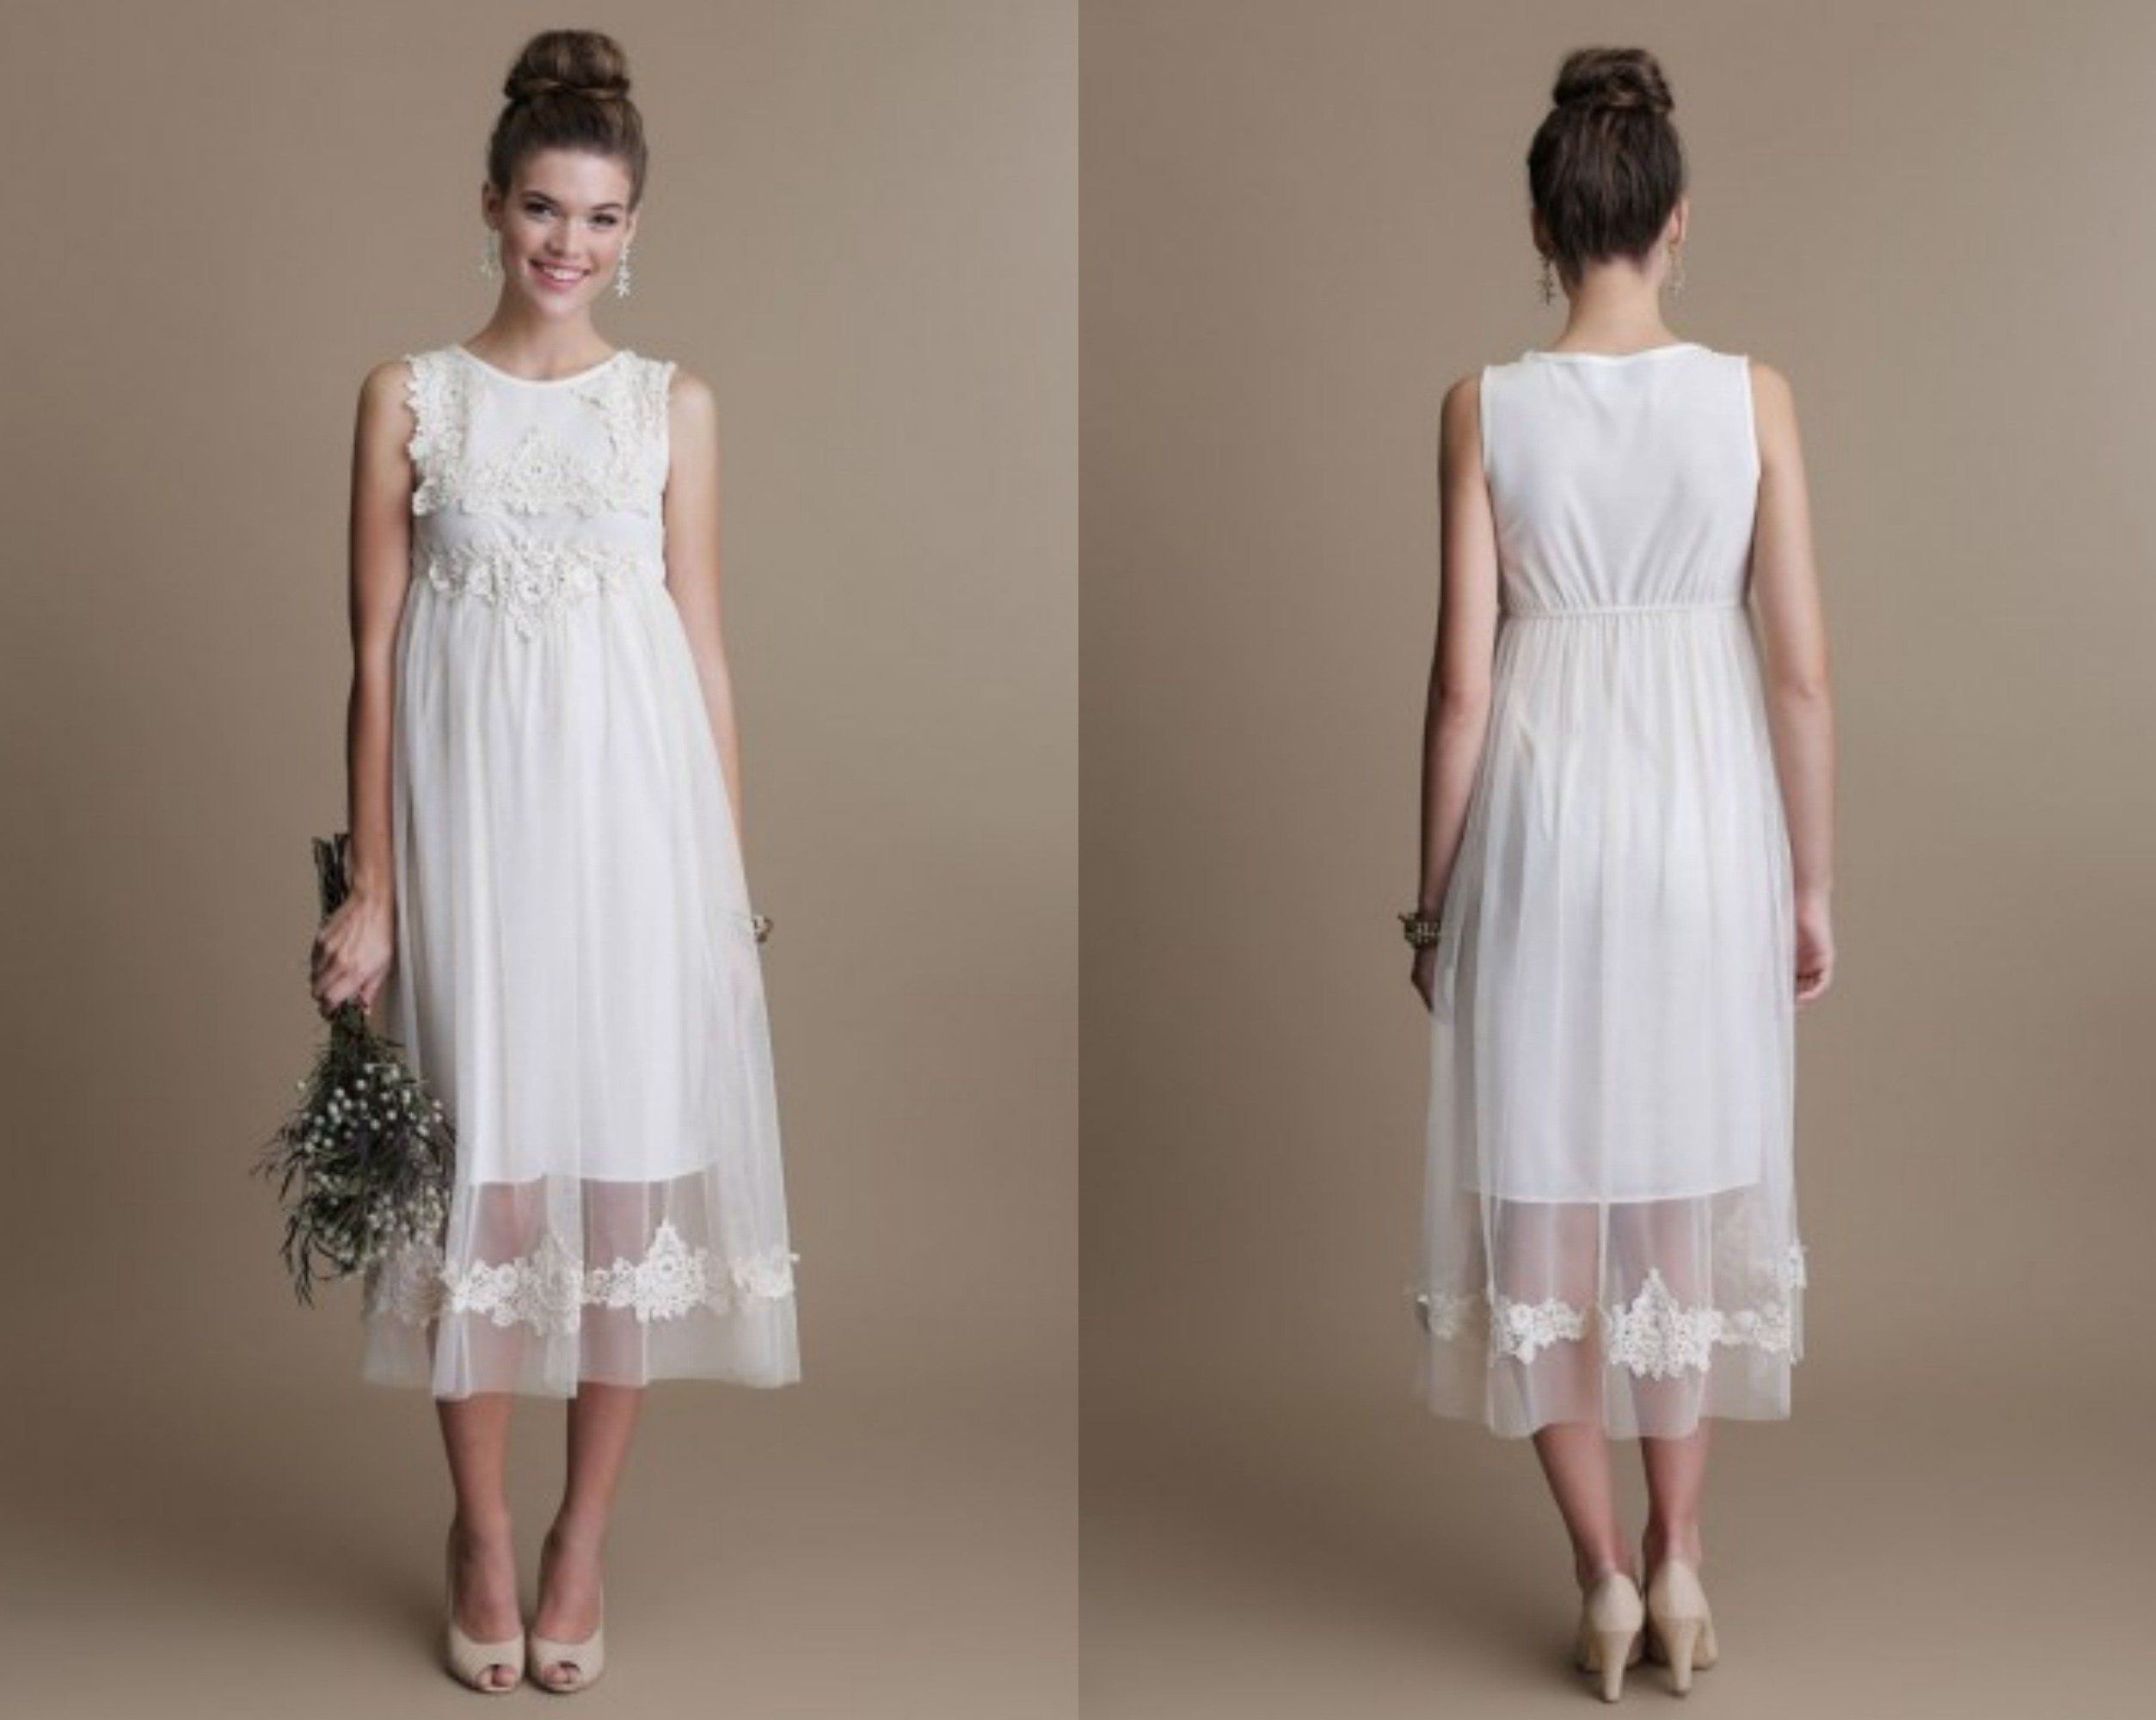 Boho Style Wedding Gowns | For me | Pinterest